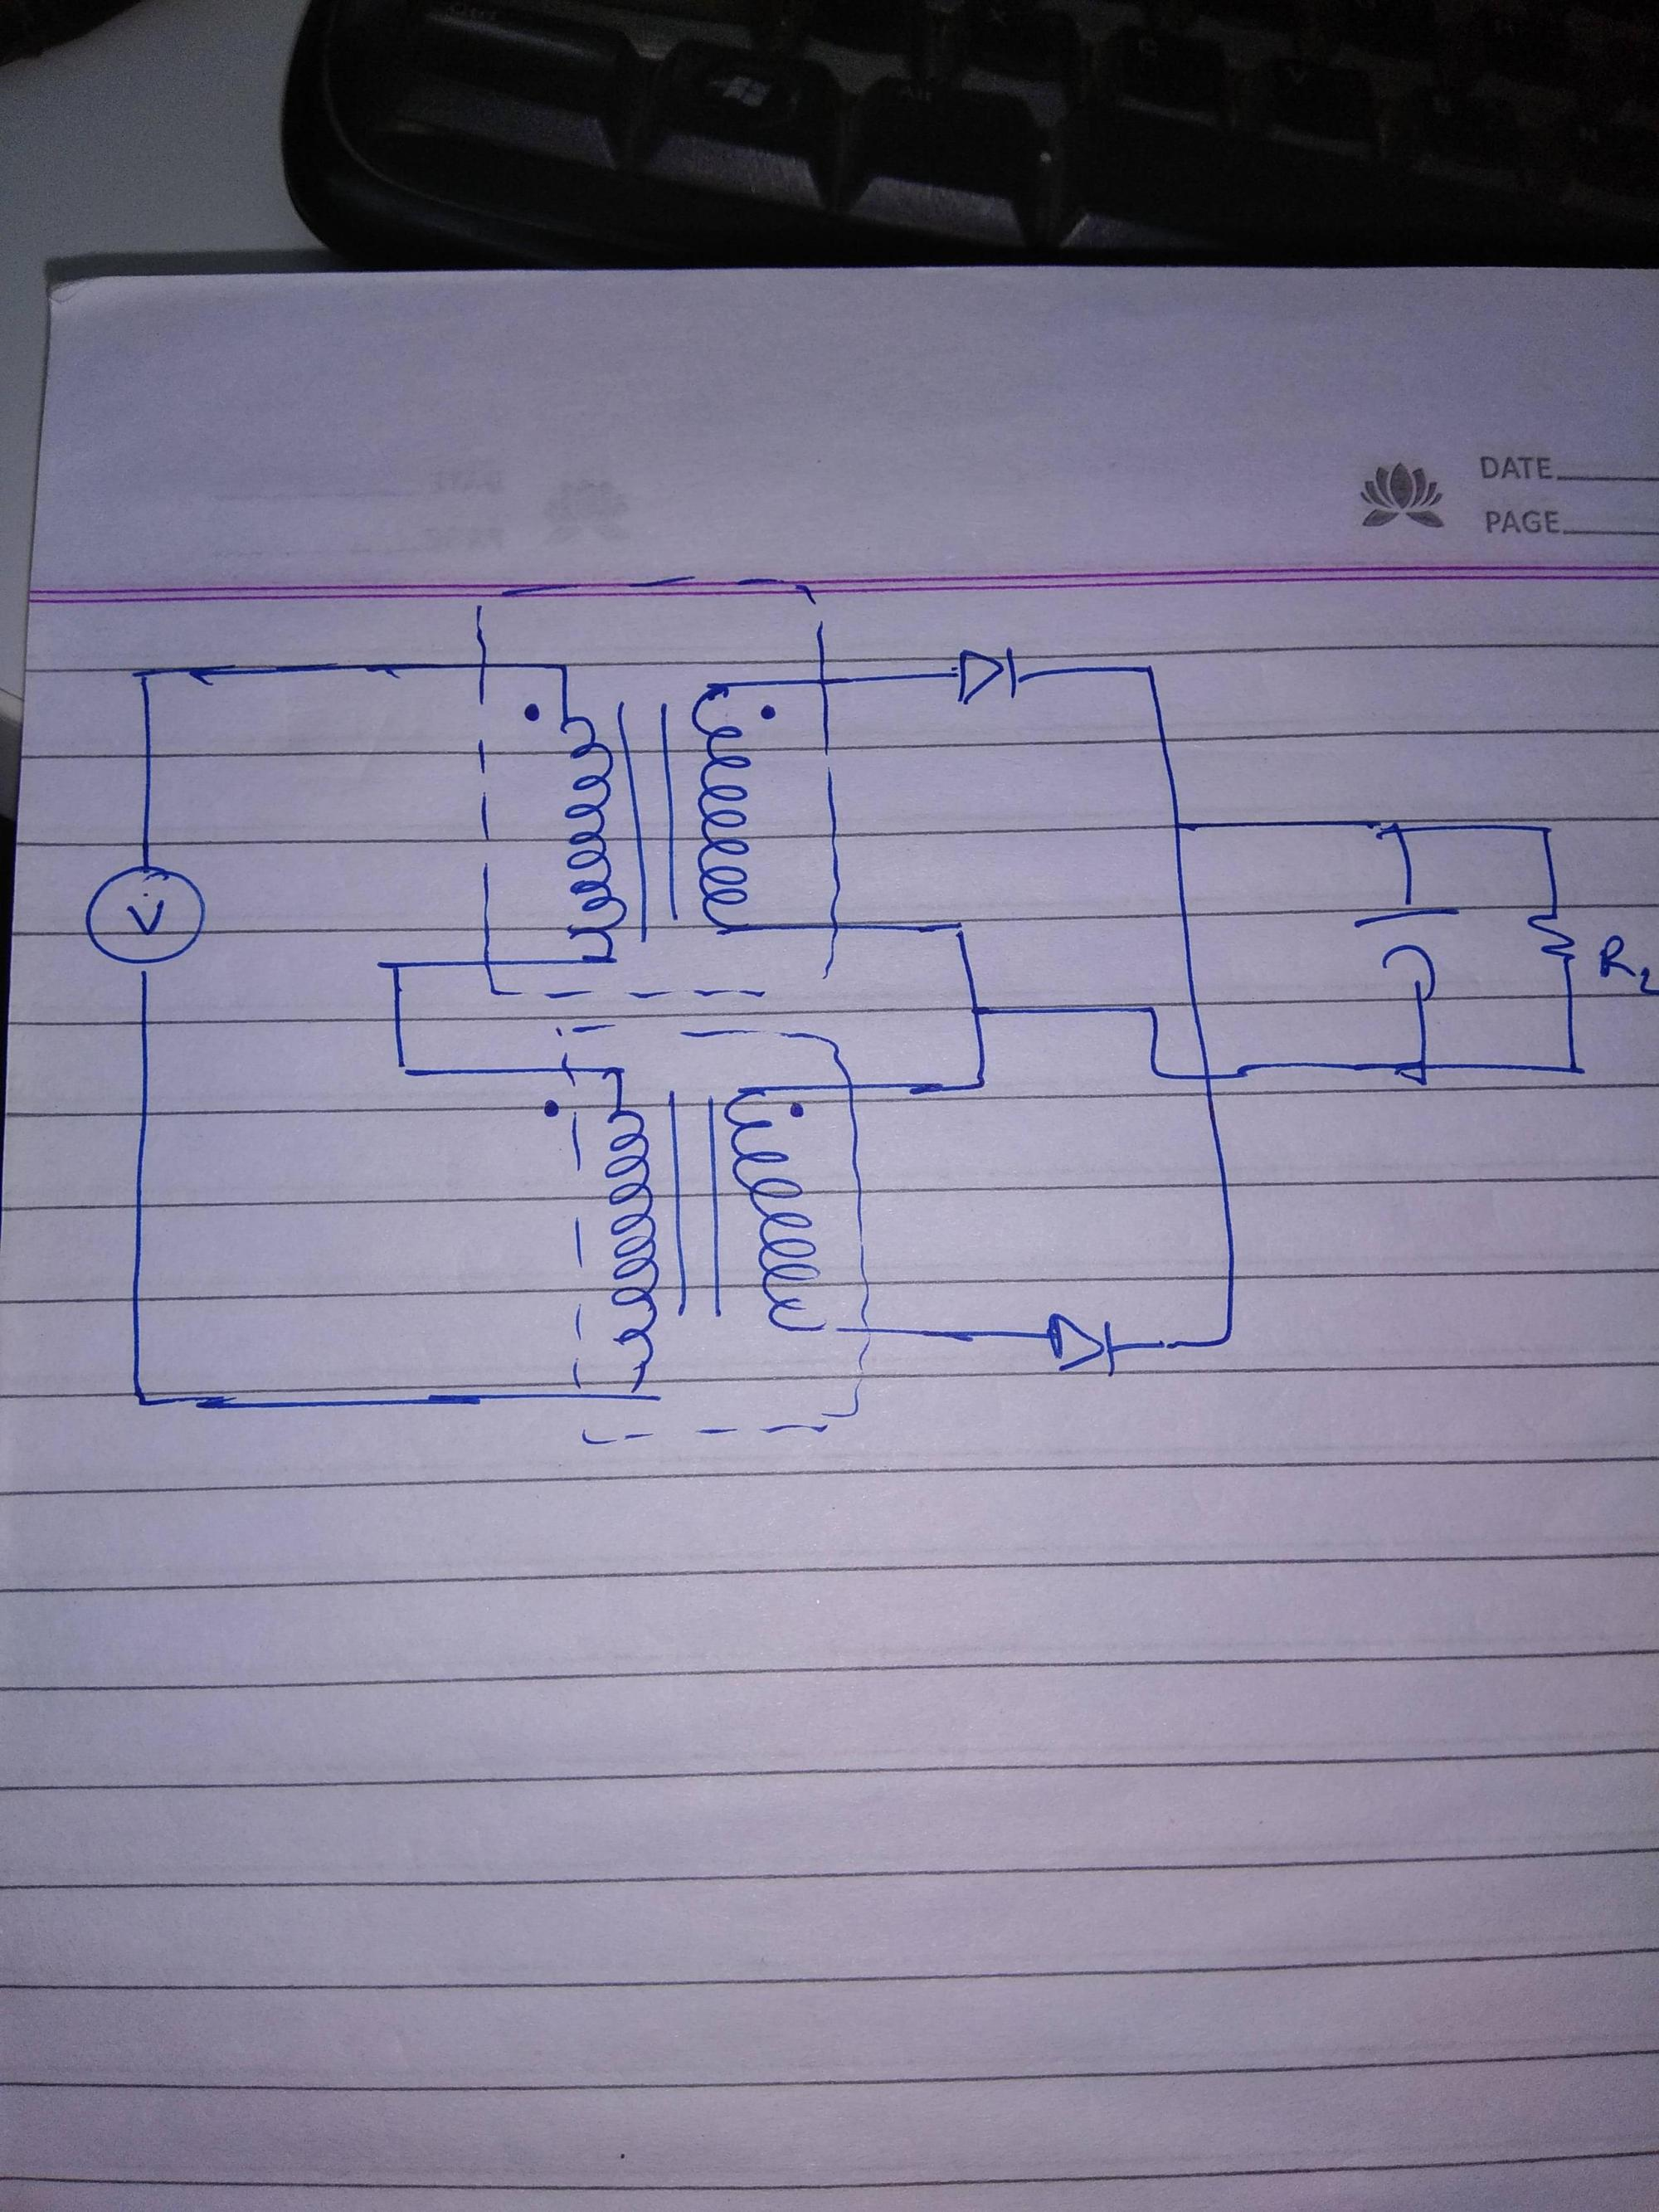 hight resolution of can 2 transformers secondary winding be connected in series making it a single center tap transformer